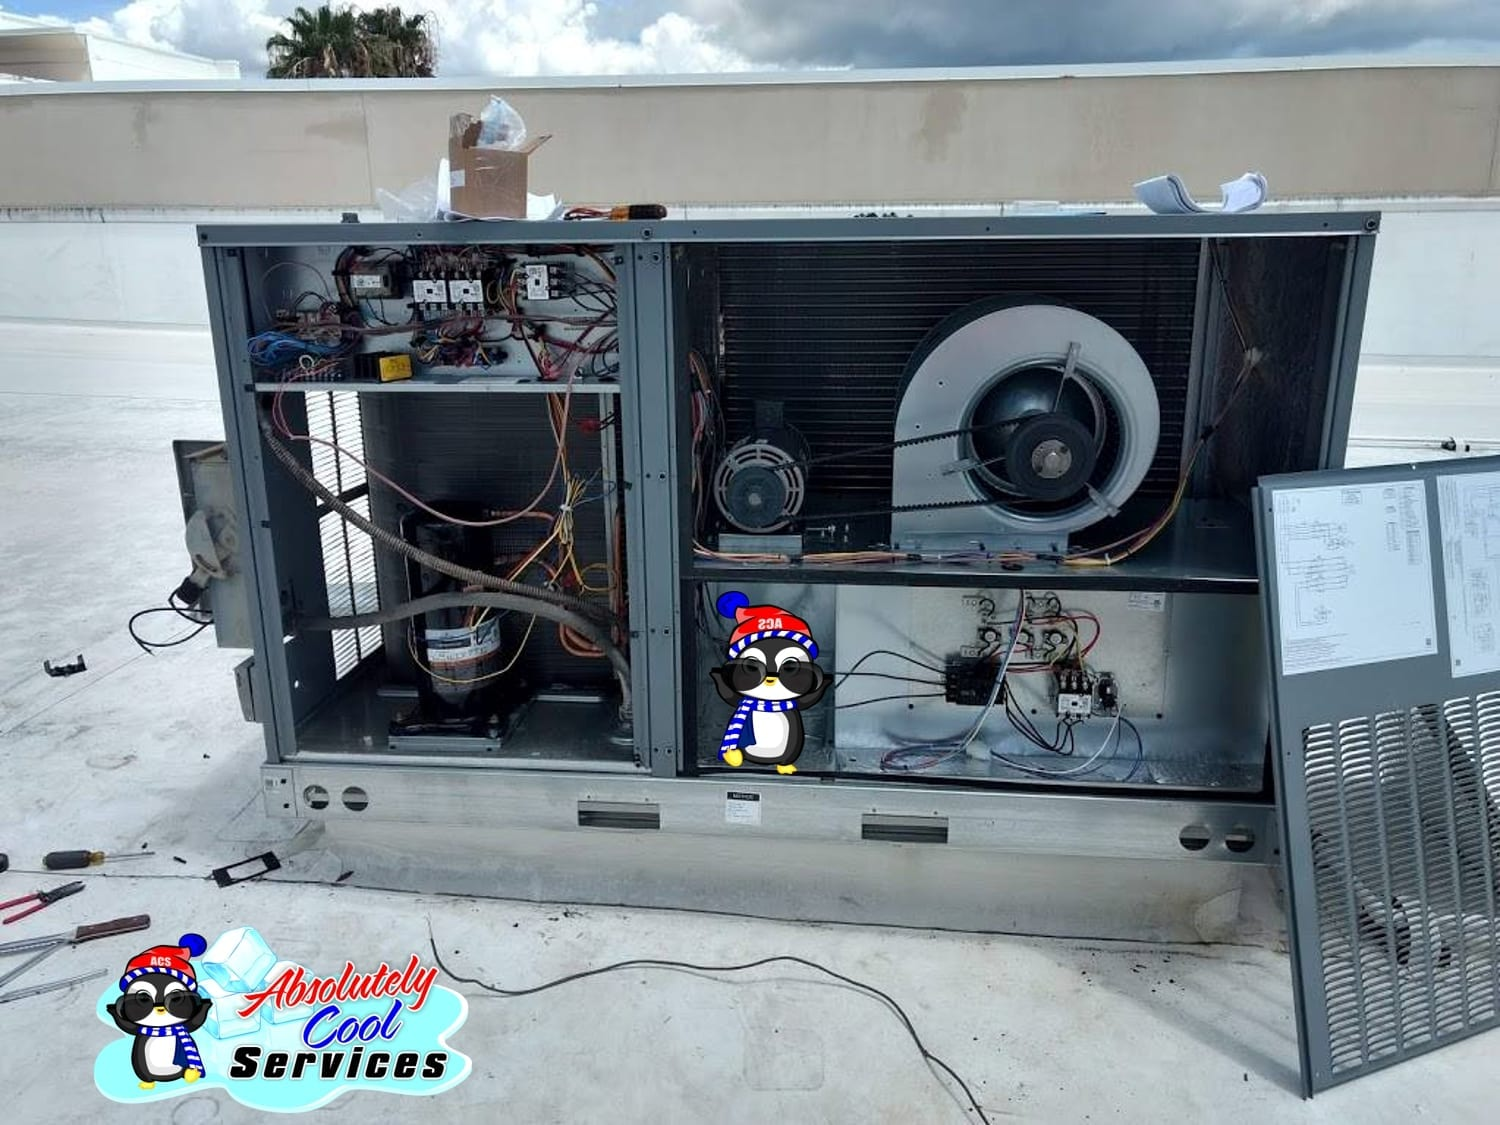 Roof Air Conditioning | Emergency Air Conditioning Maintenance Company near Lake Worth